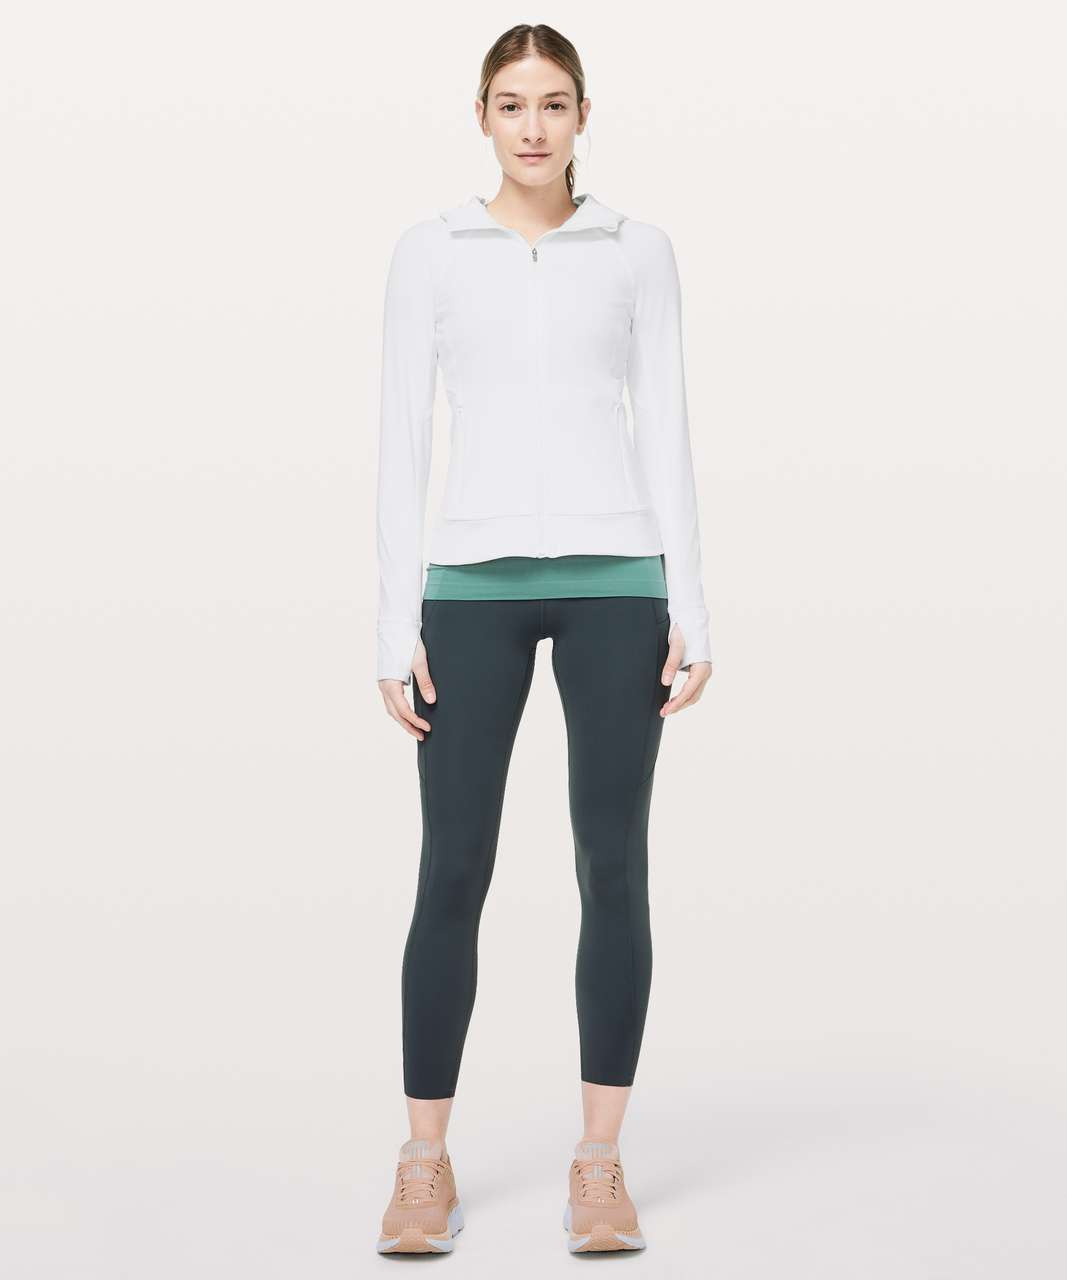 Lululemon Dash Into Dusk Jacket - White